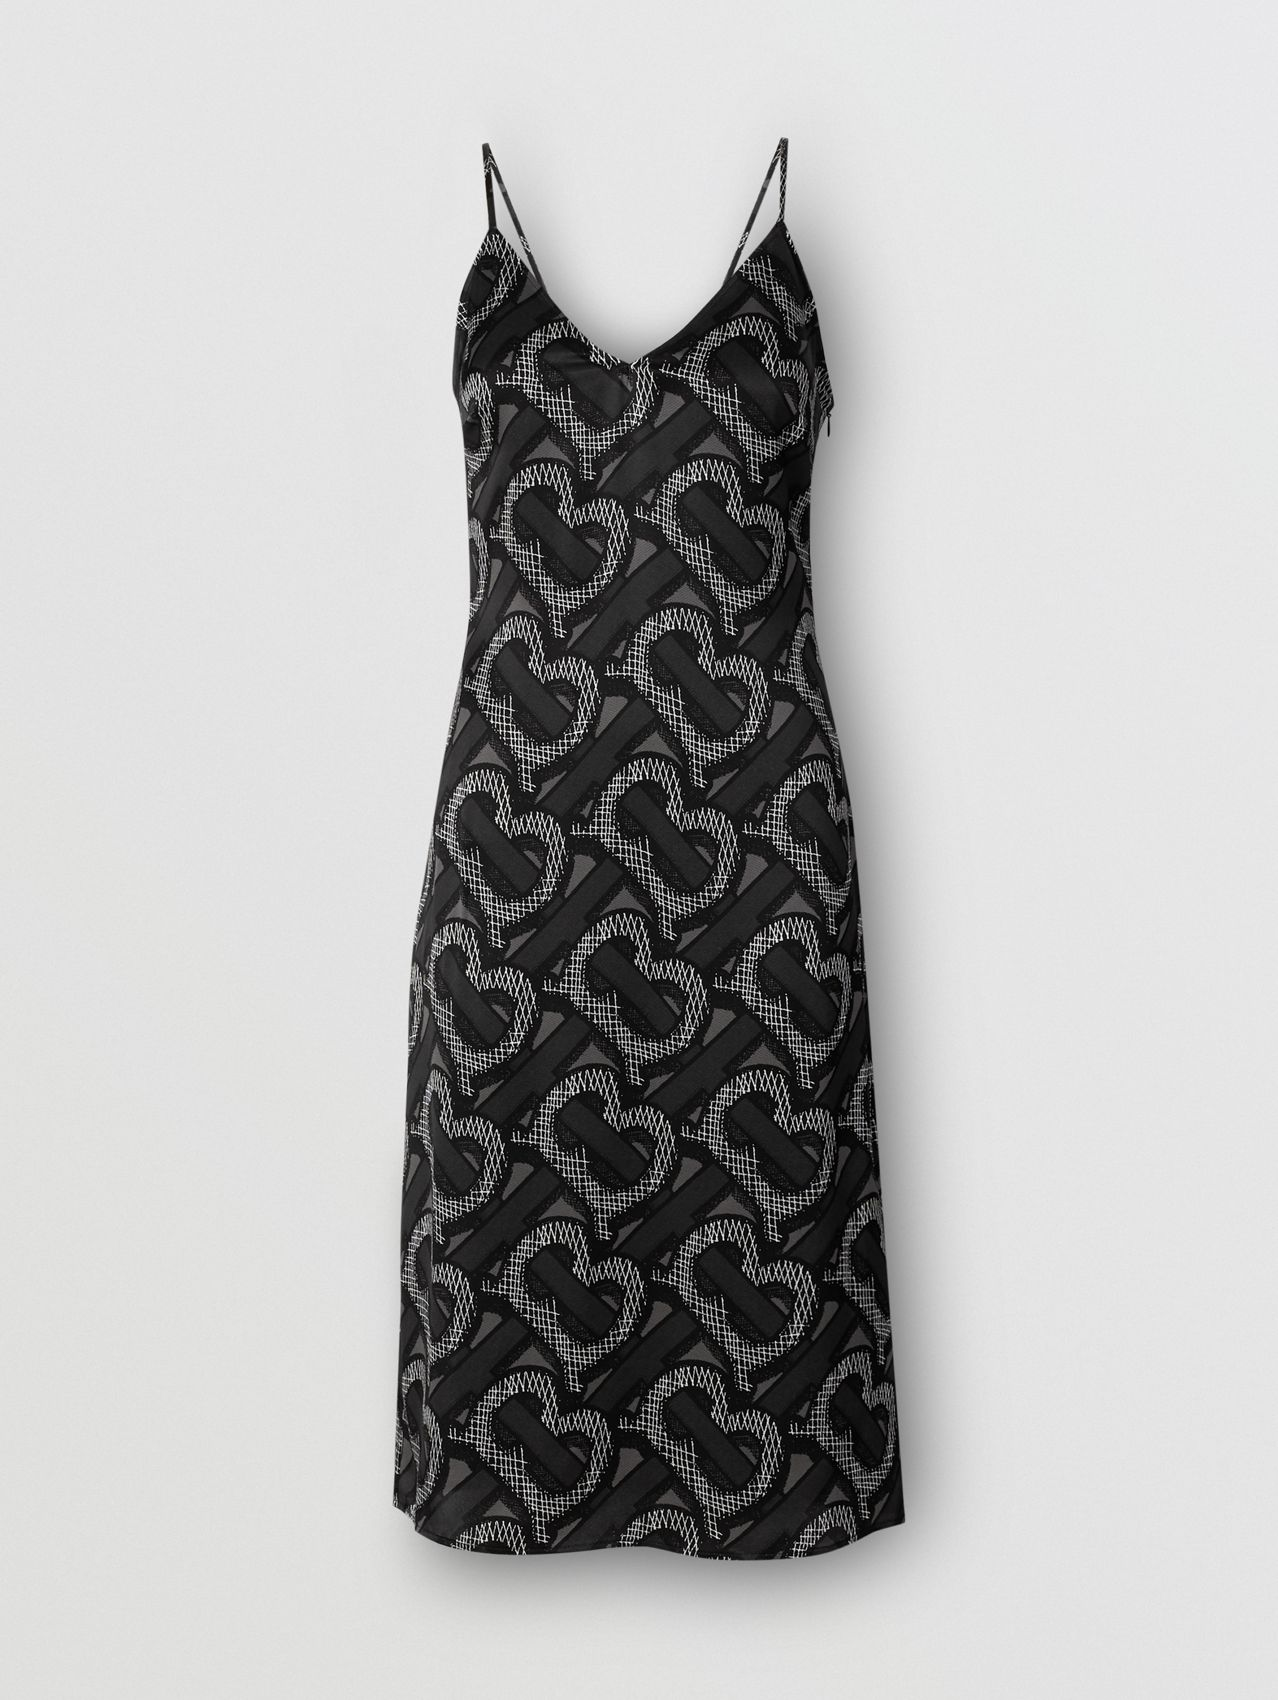 Monogram Print Silk Satin Slip Dress in Graphite